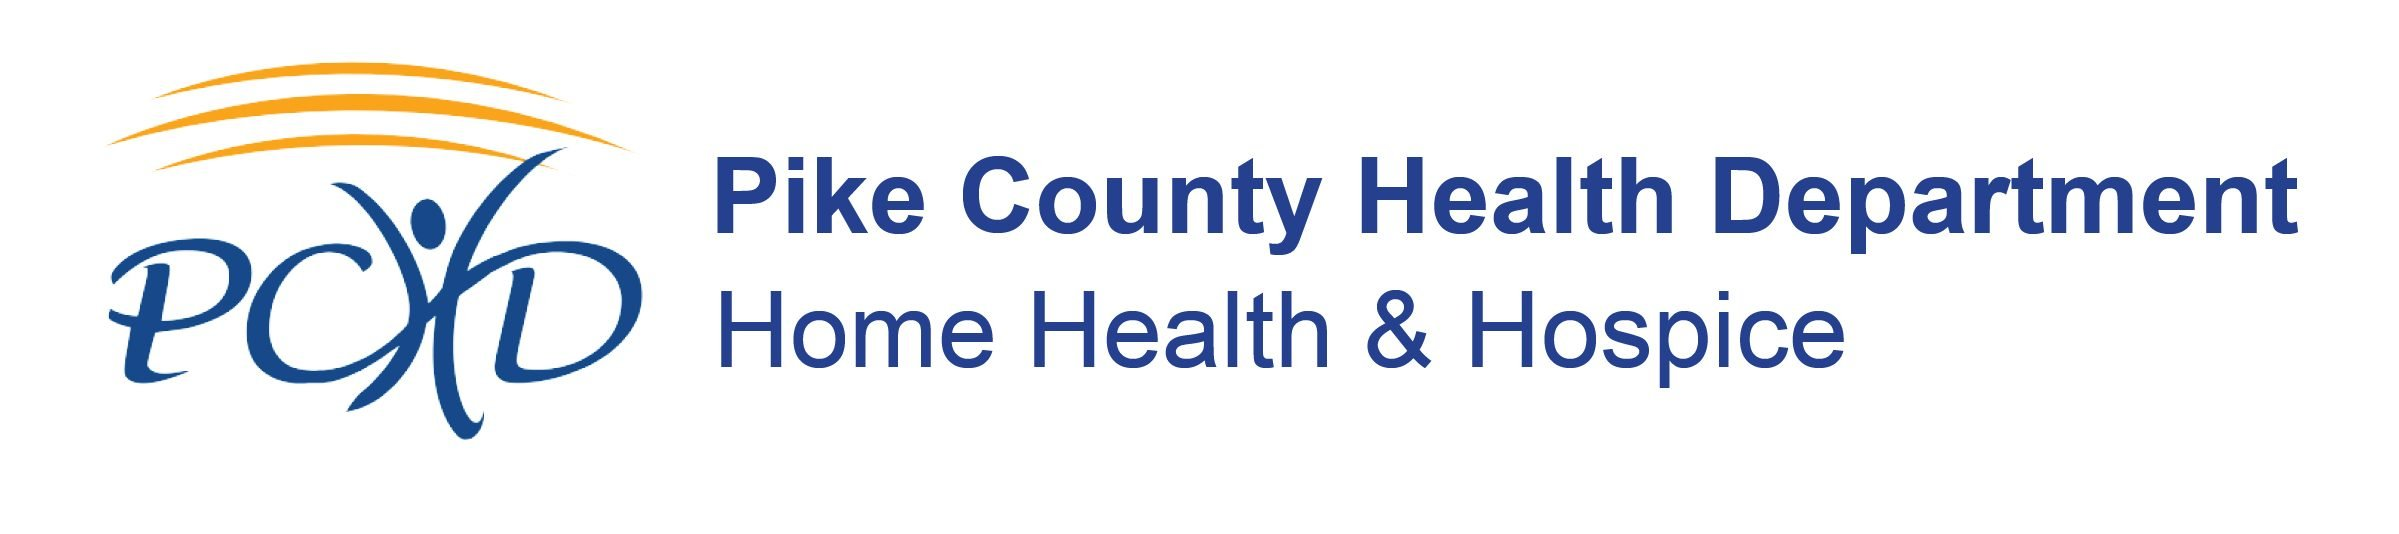 Meet Our Board And Staff Pike County Health Department Home